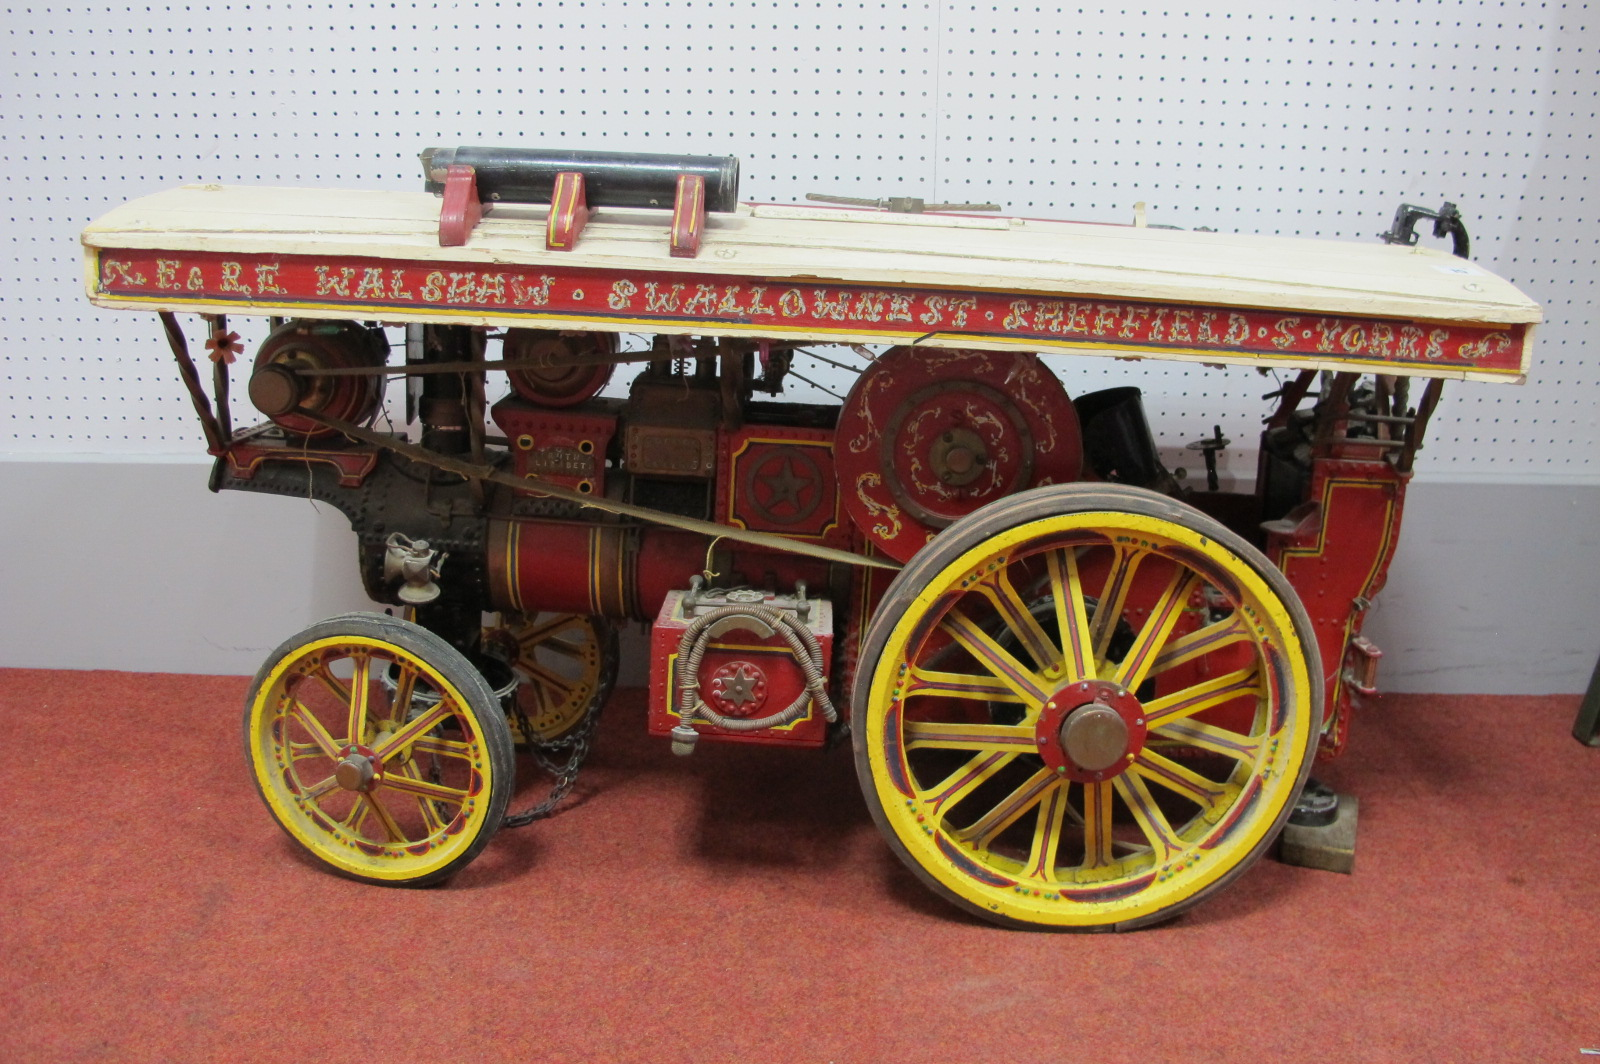 WITHDRAWN A 1½ Inch Scale Model of a J. Burnell & Son Showman's Engine, well detailed with many